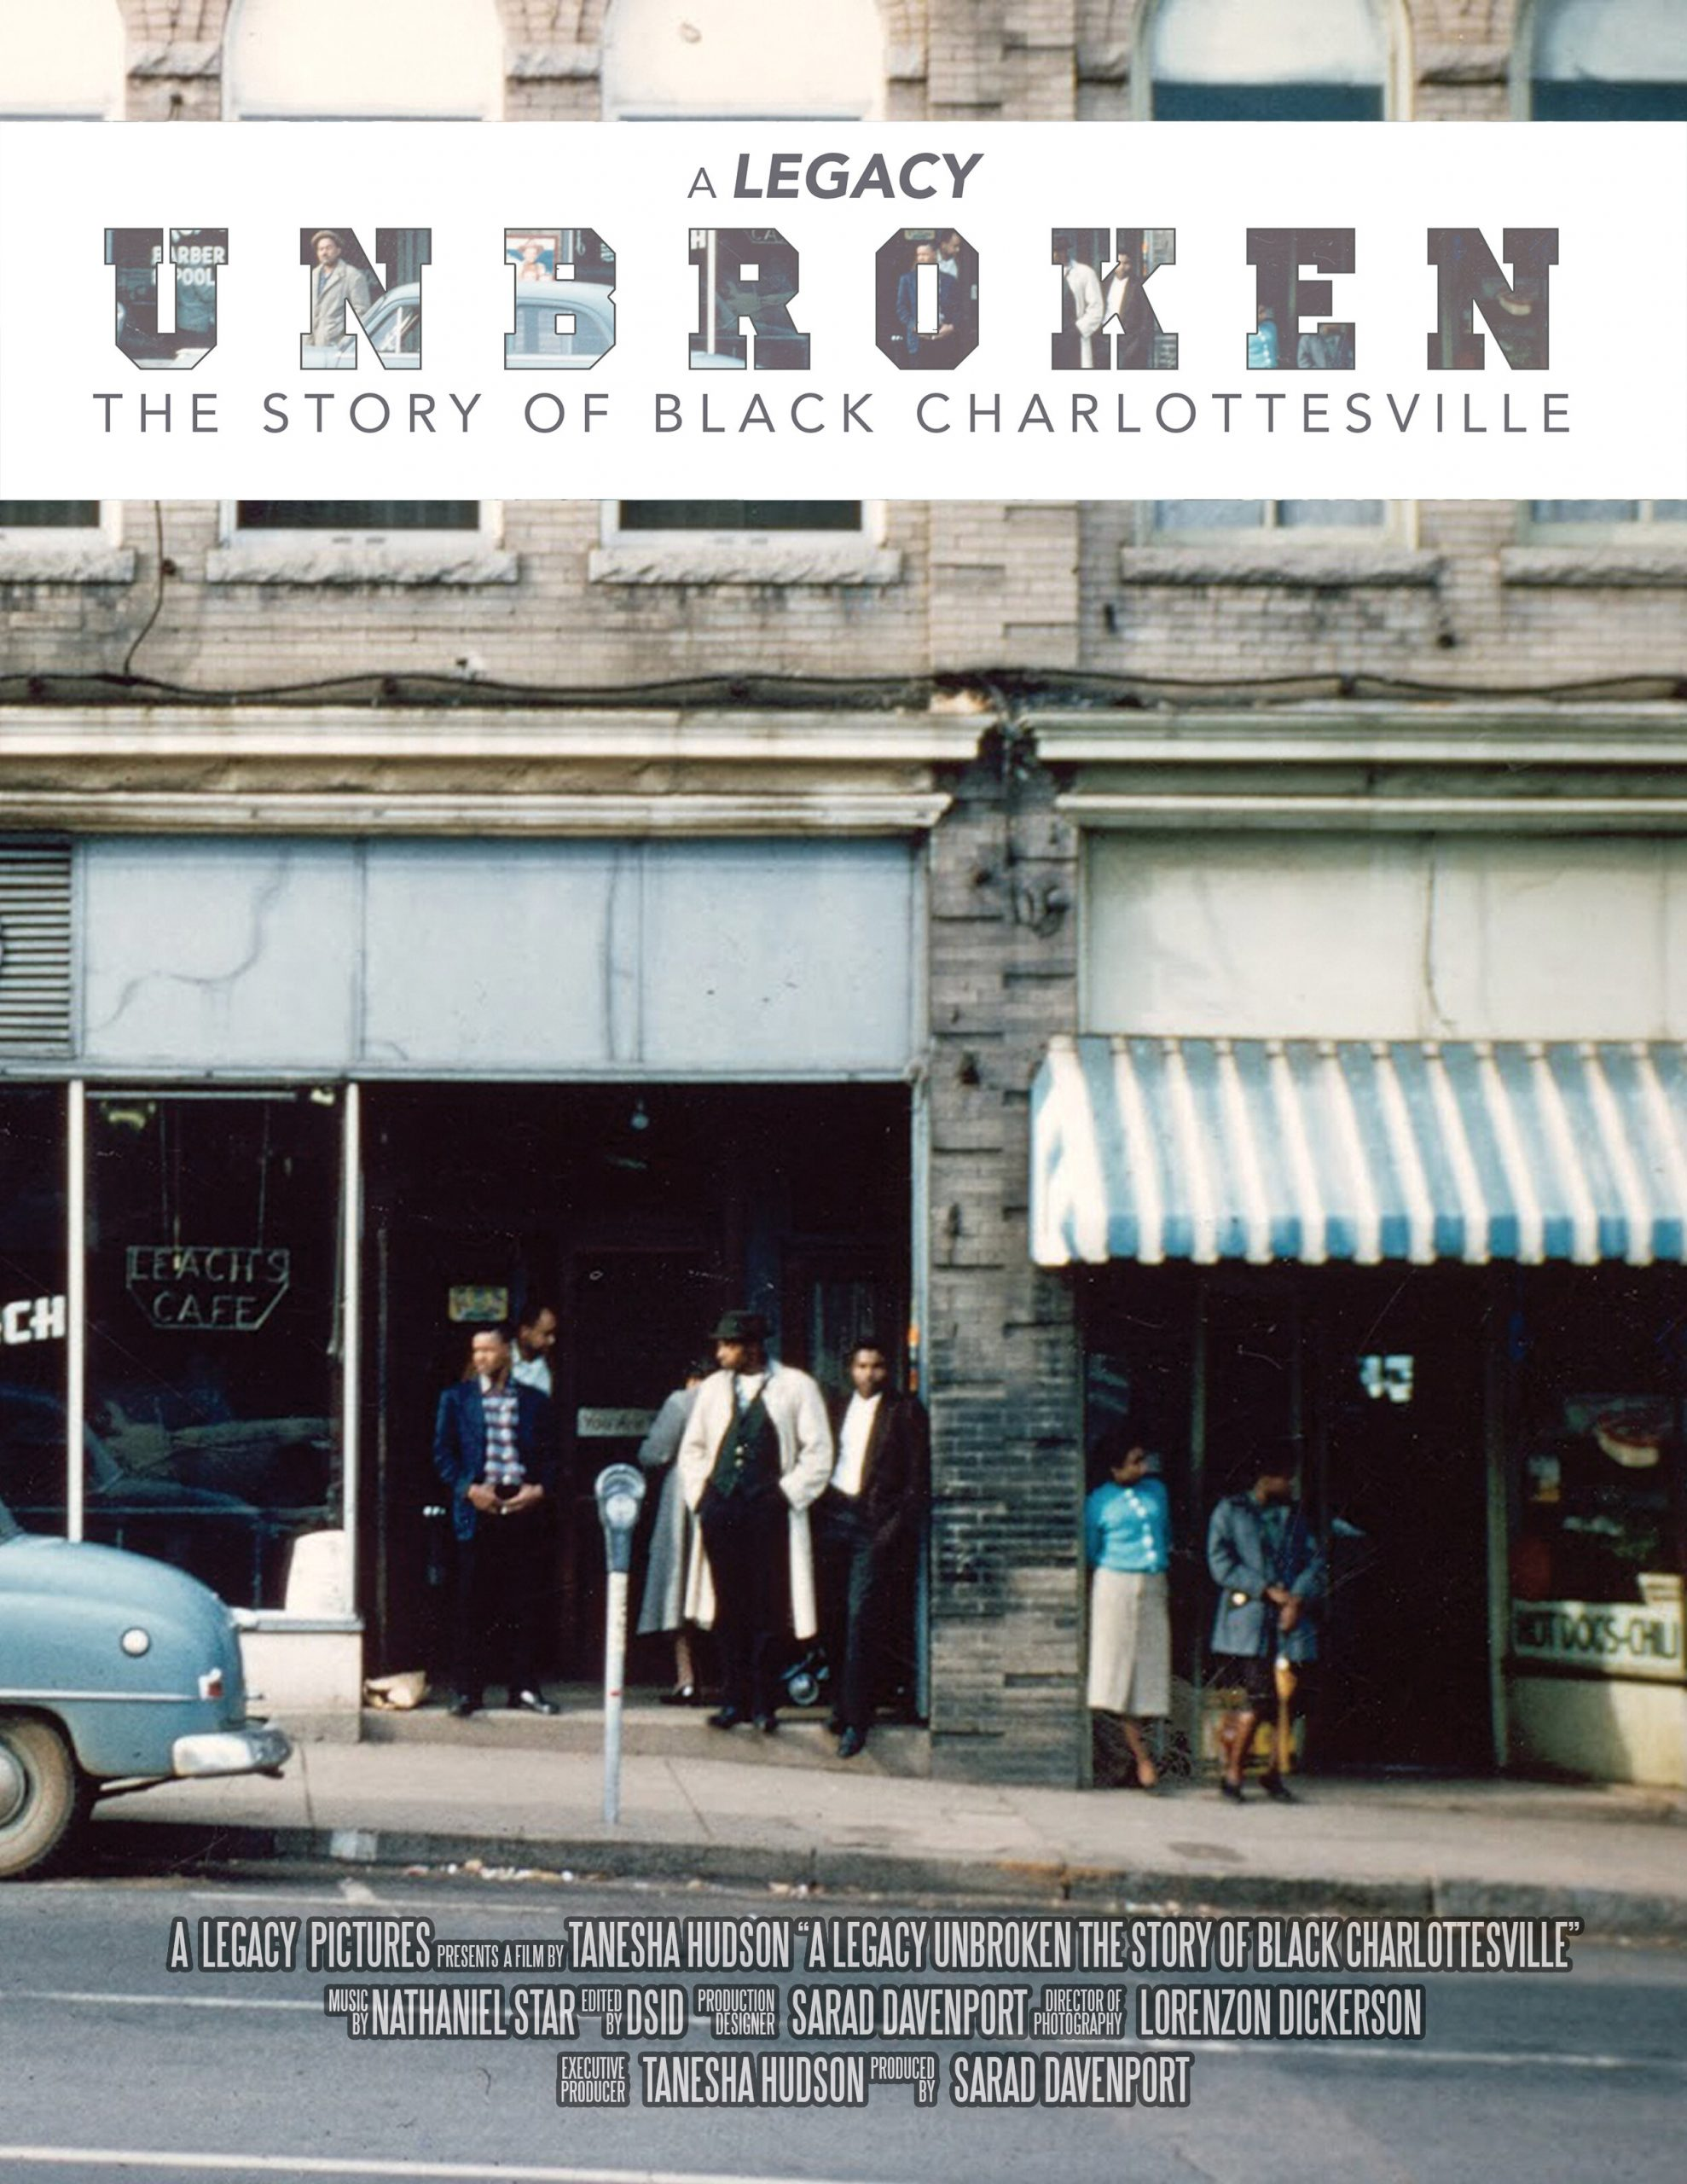 Tanesha Hudson Documentary: A Legacy Unbroken Now Available On-Demand